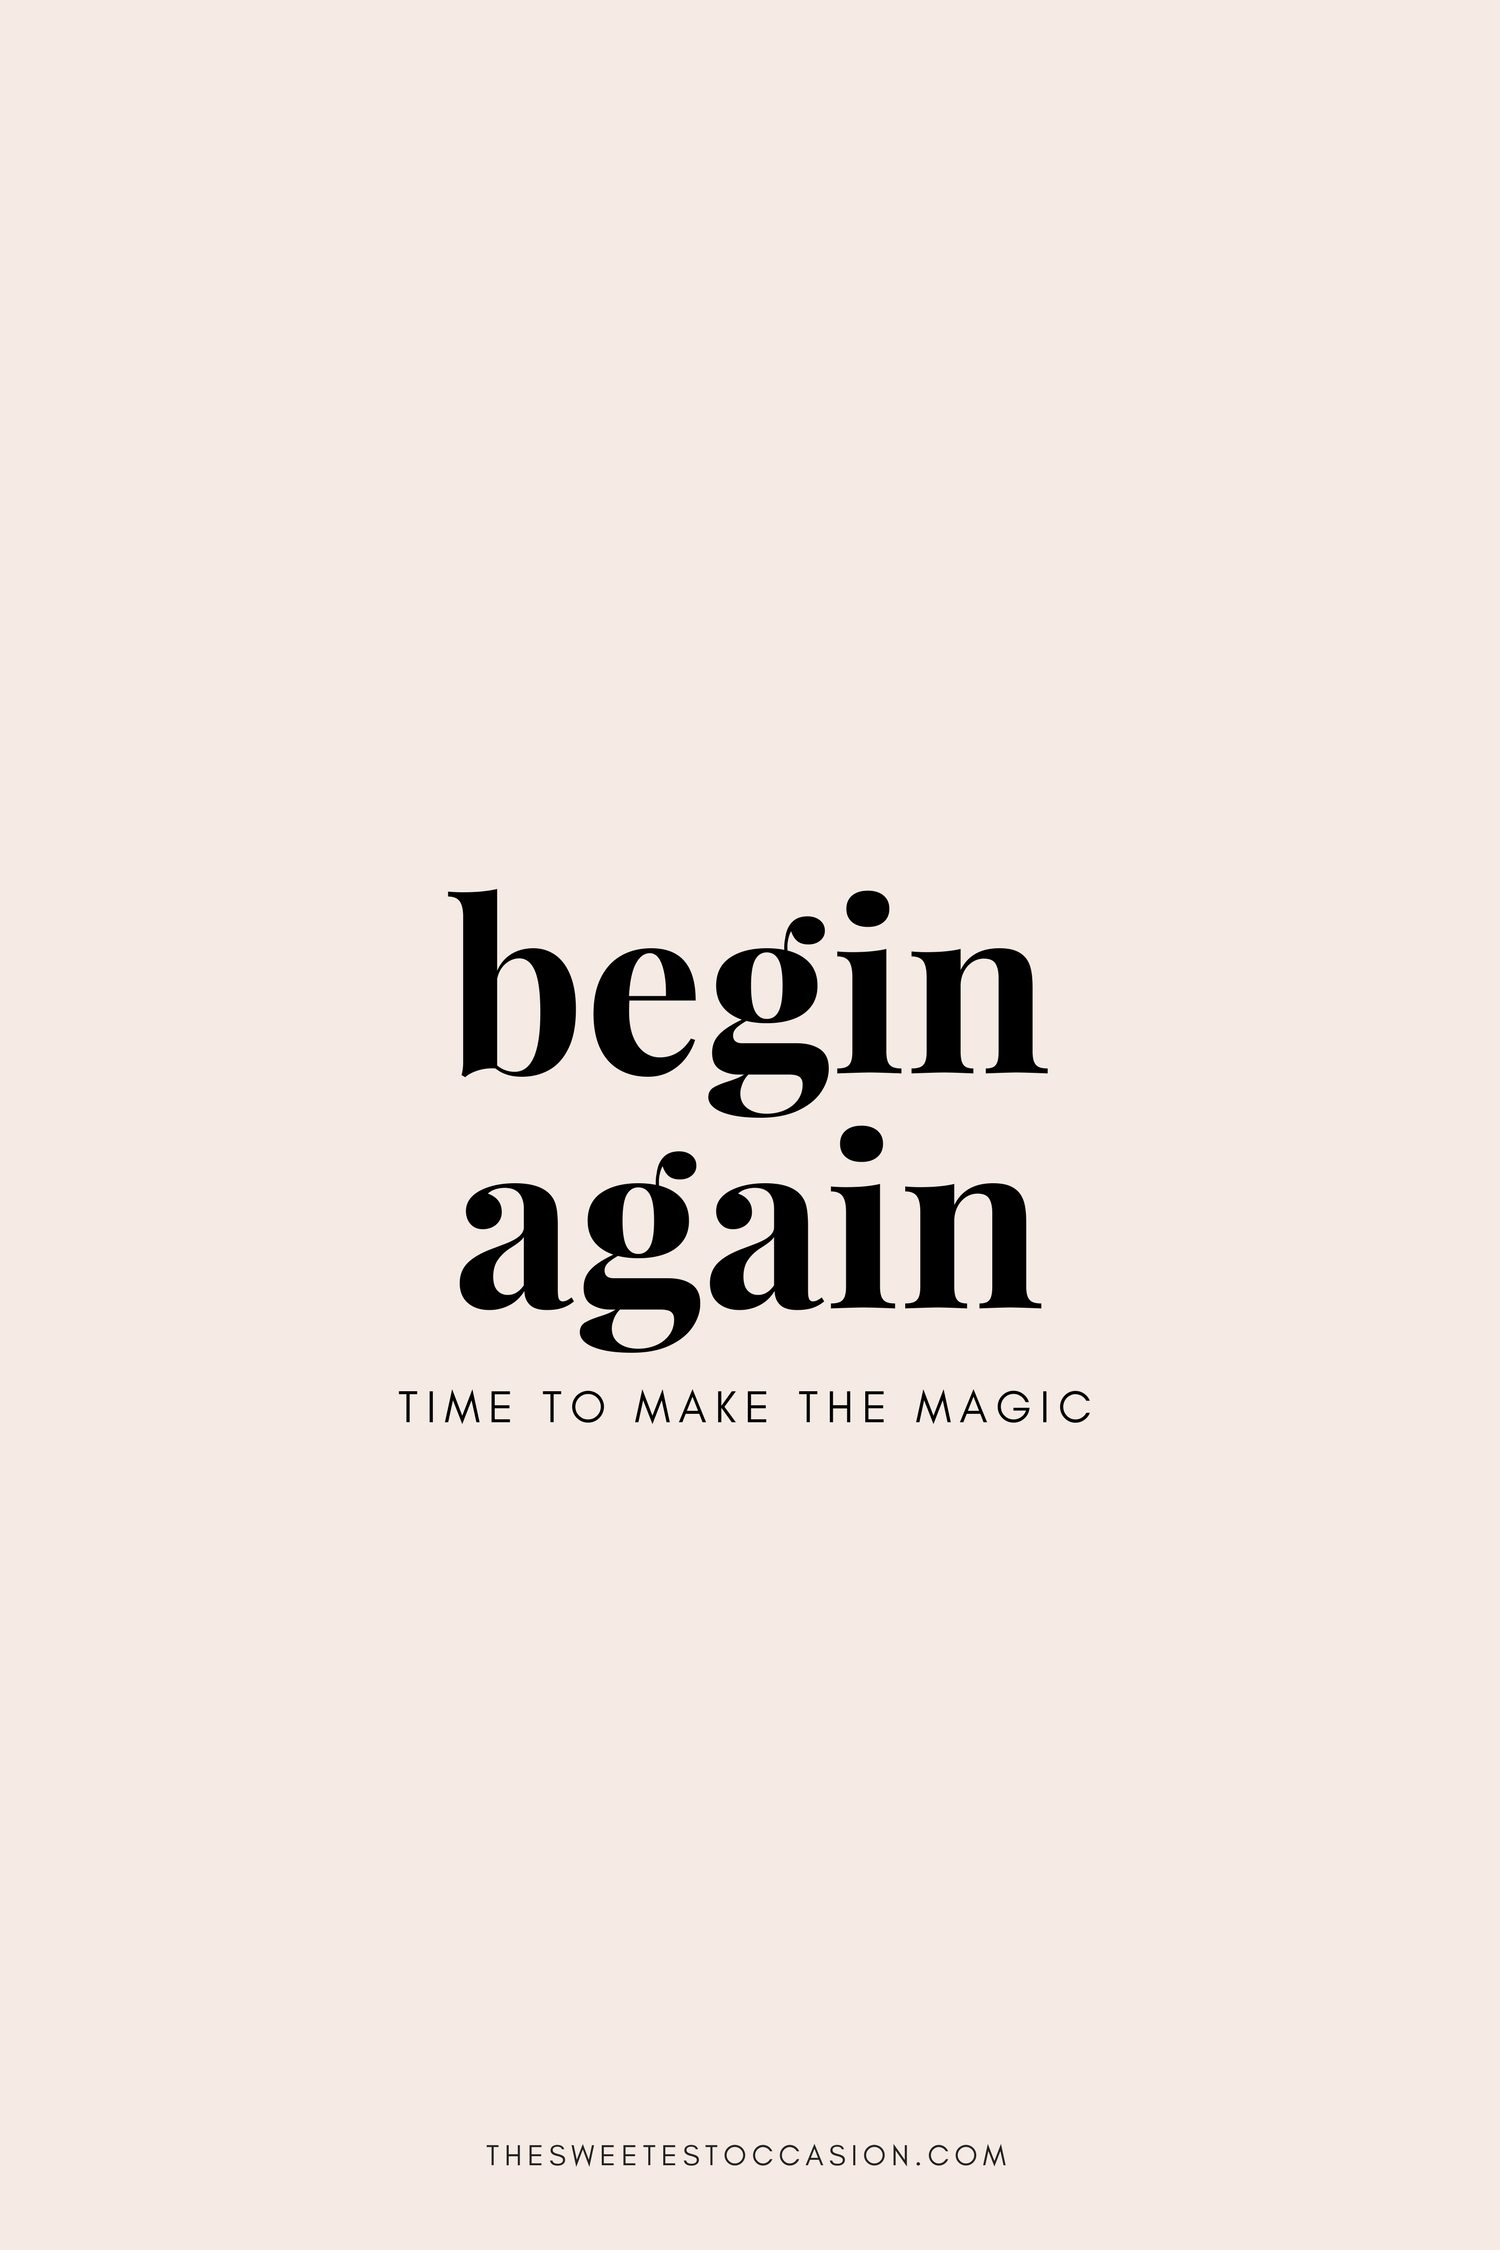 Begin Again | Time to make the magic | 2018 quotes from @cydconverse